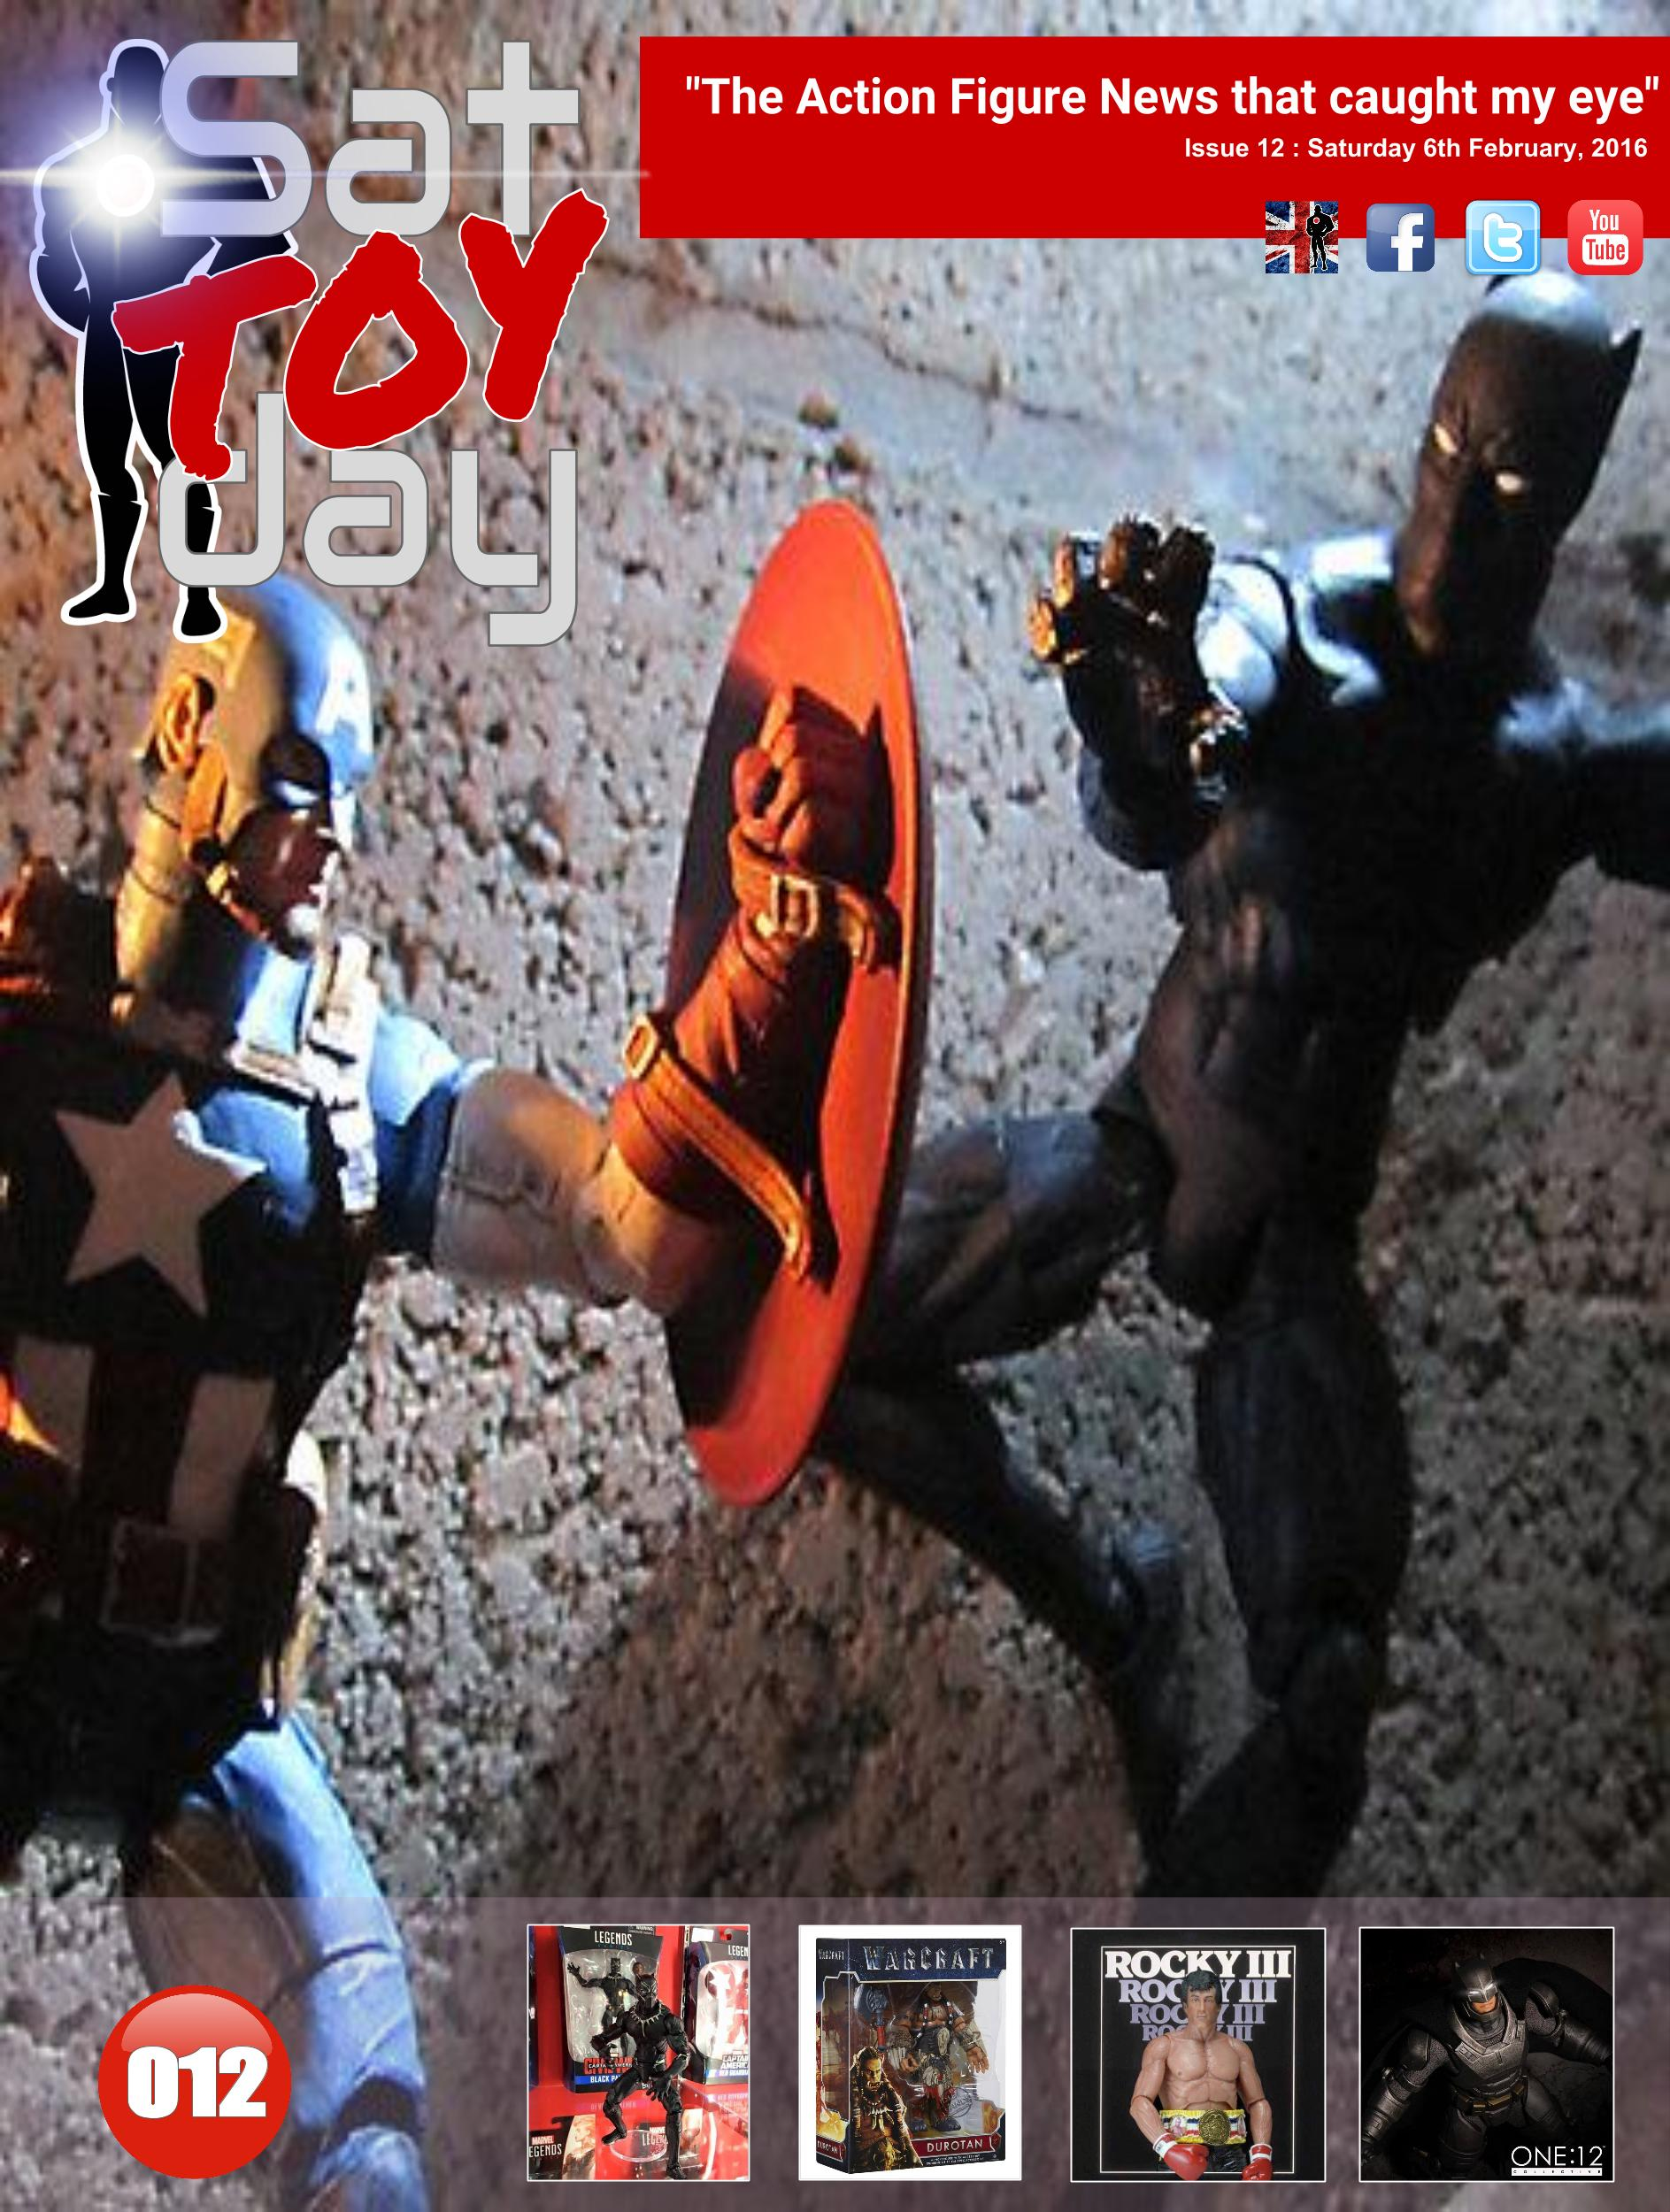 012 Action Figure Sat-TOY-day News, 6th February 2016